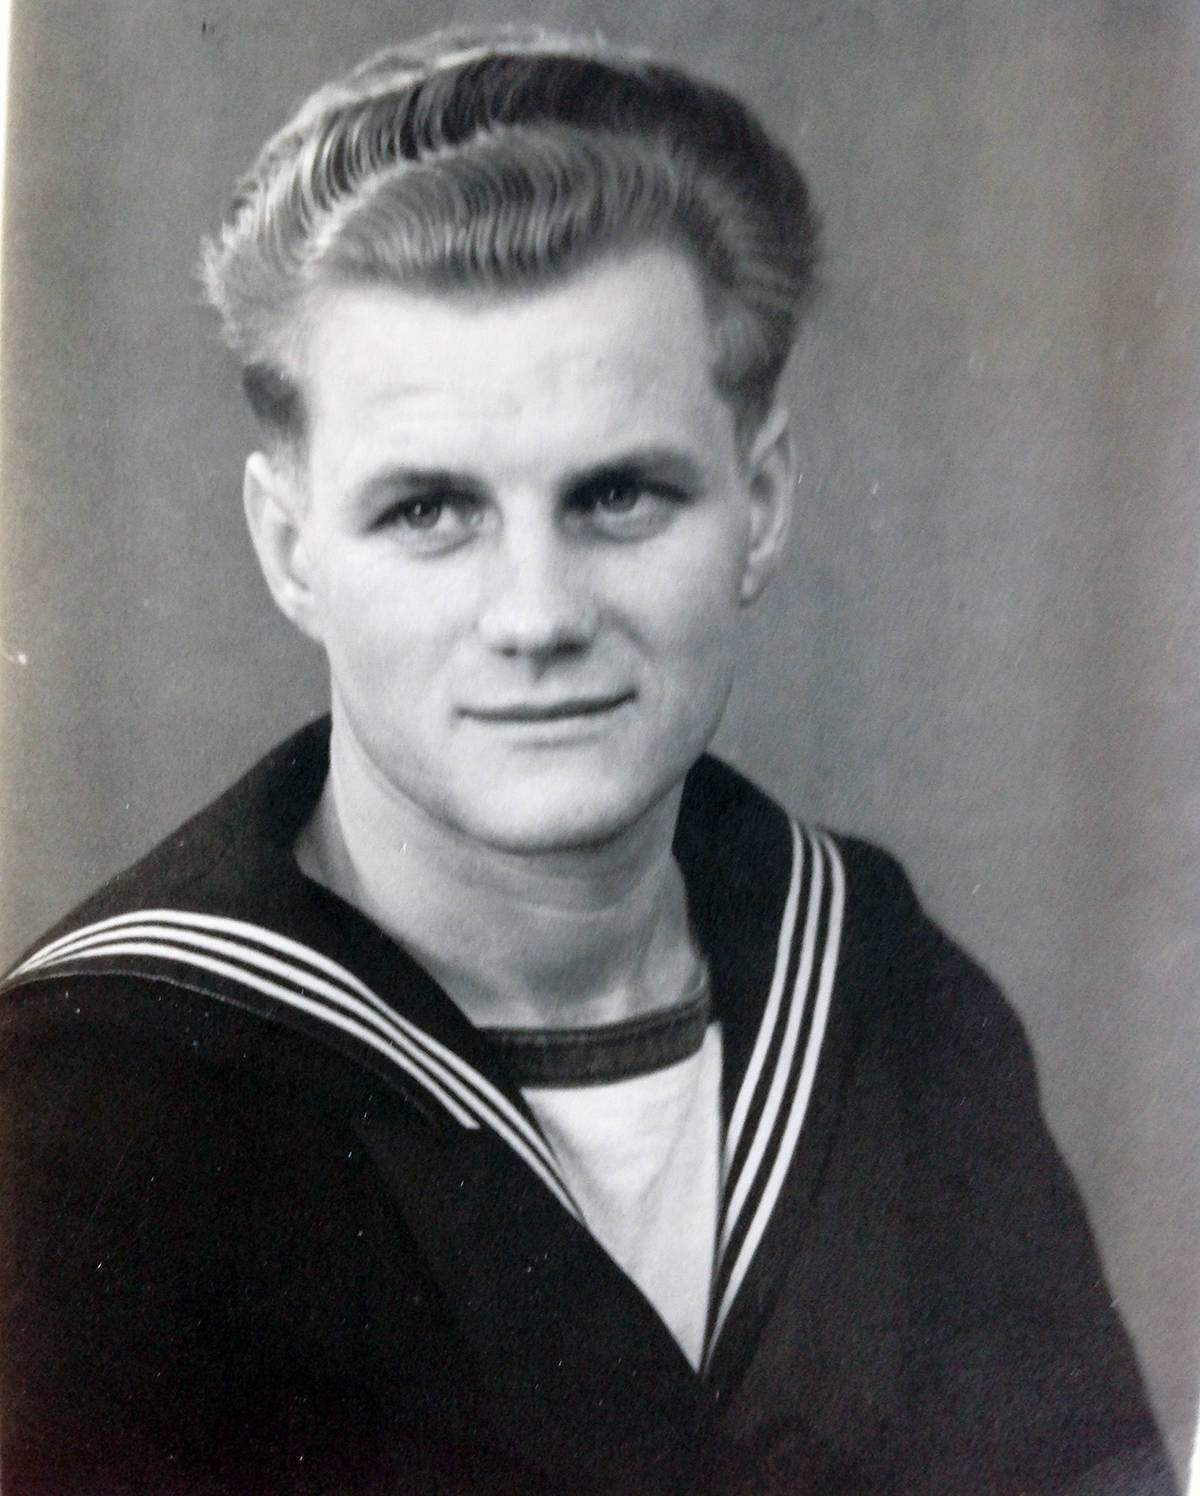 Ejlif in his navy days when he met Anna. (Photo submitted)